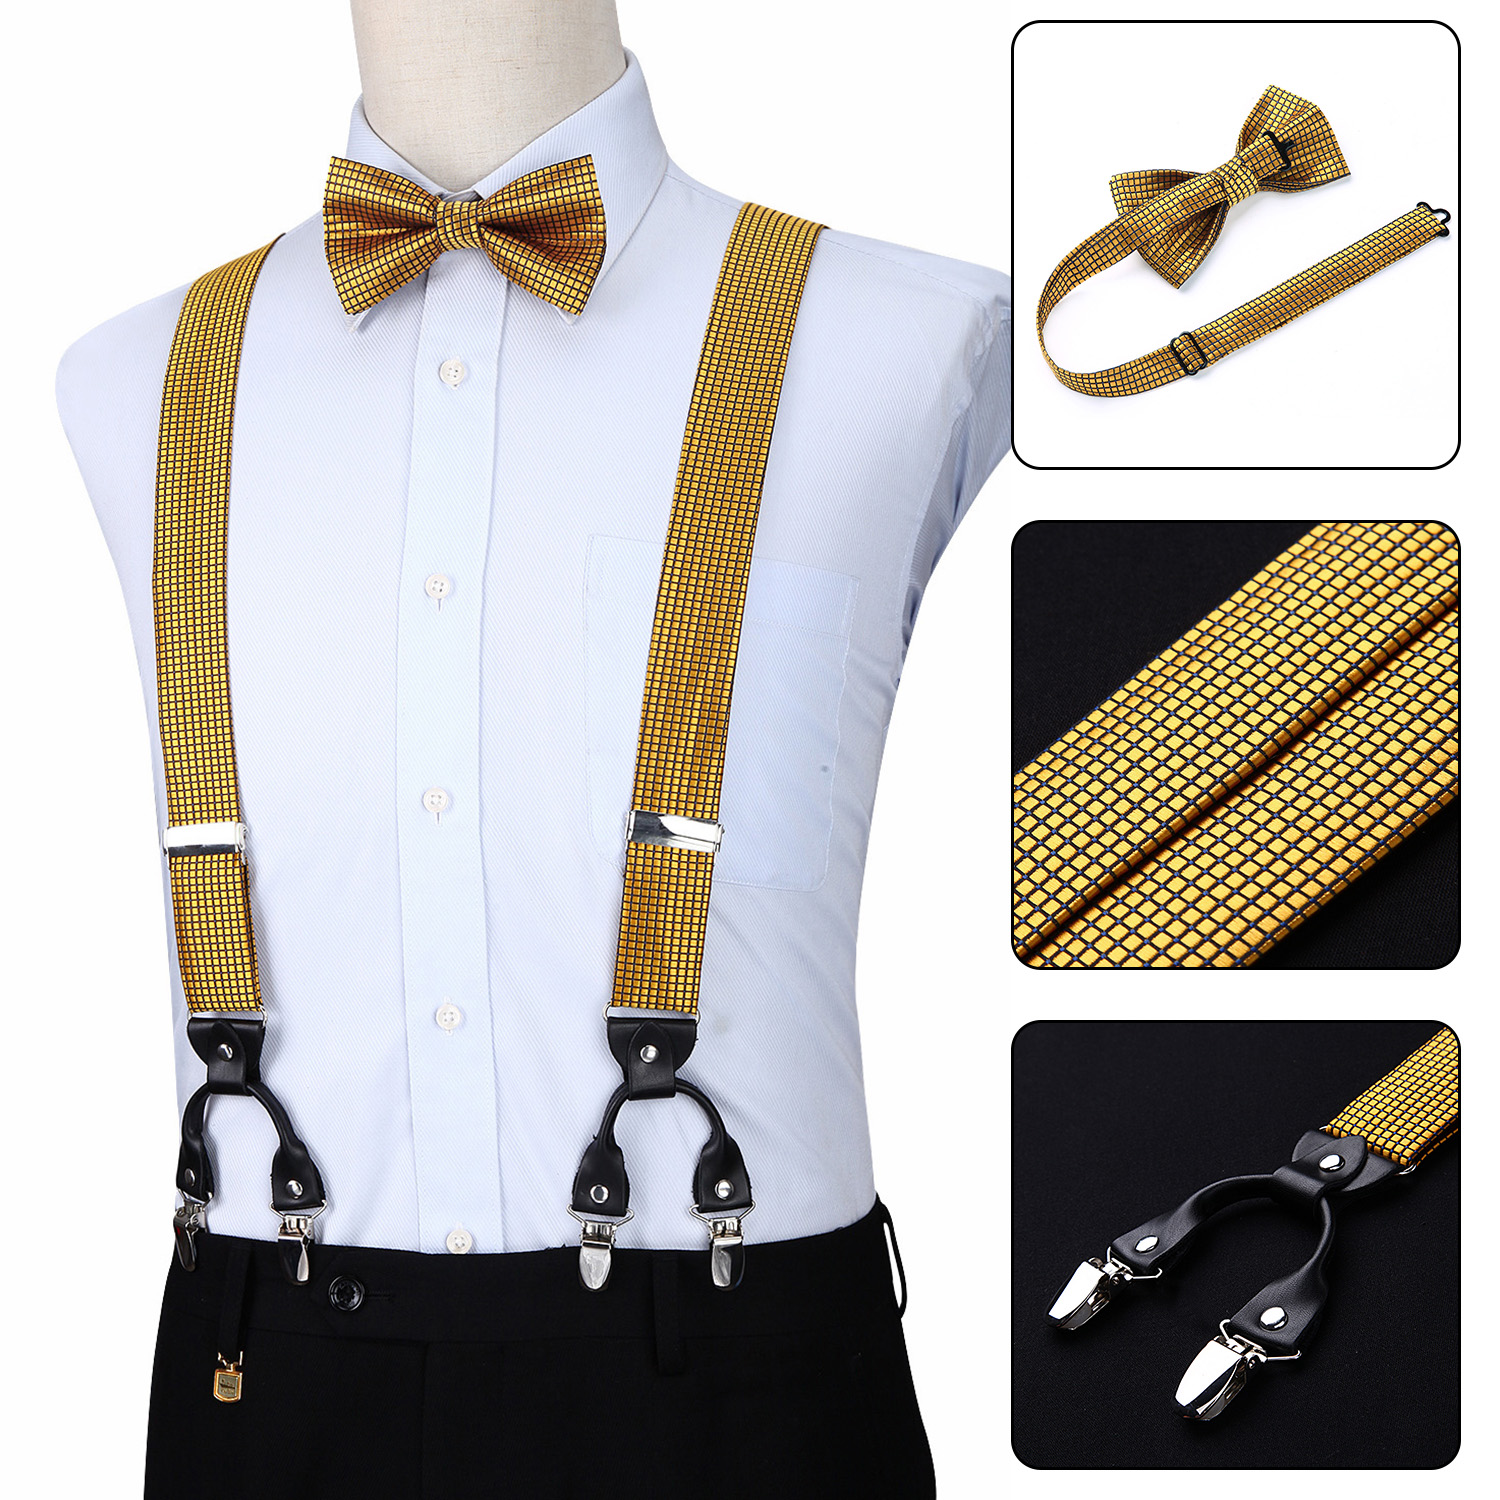 PRINT PATTERN FASHION SUSPENDERS Clip On Adjustable Braces Costume Party Belt